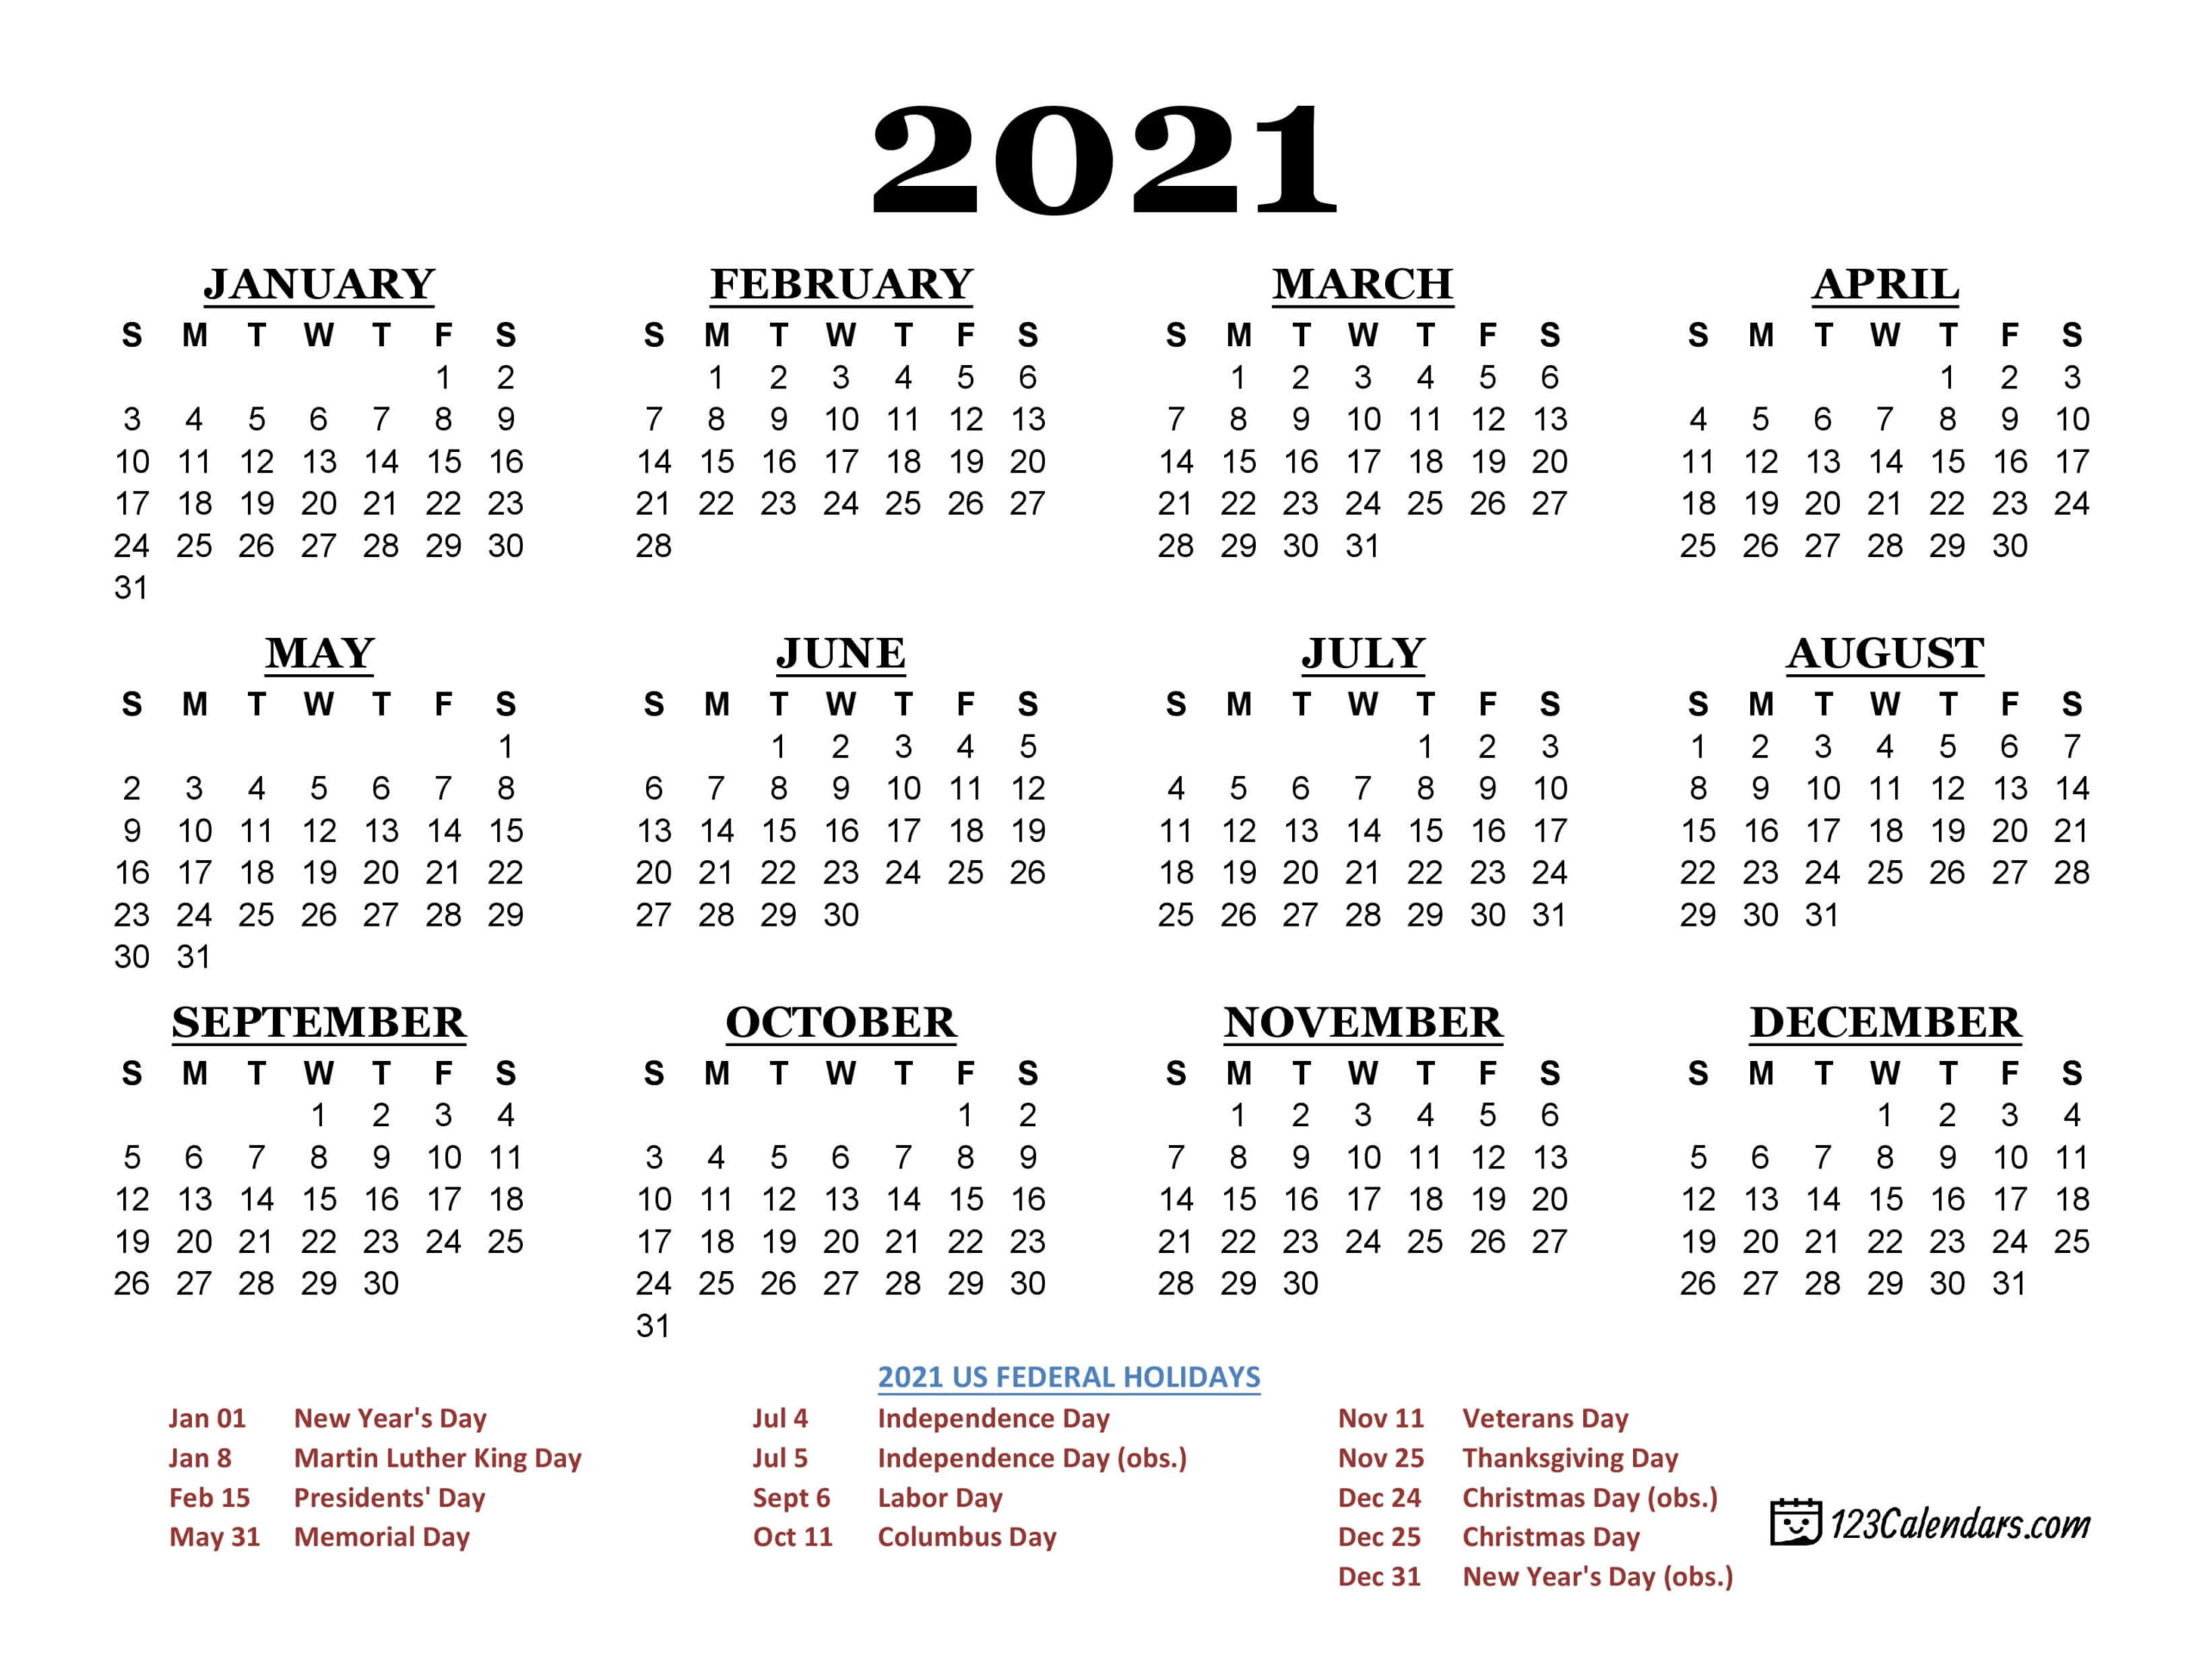 2021 Printable Calendar | 123Calendars with Print Free 2021 Calendar Without Downloading